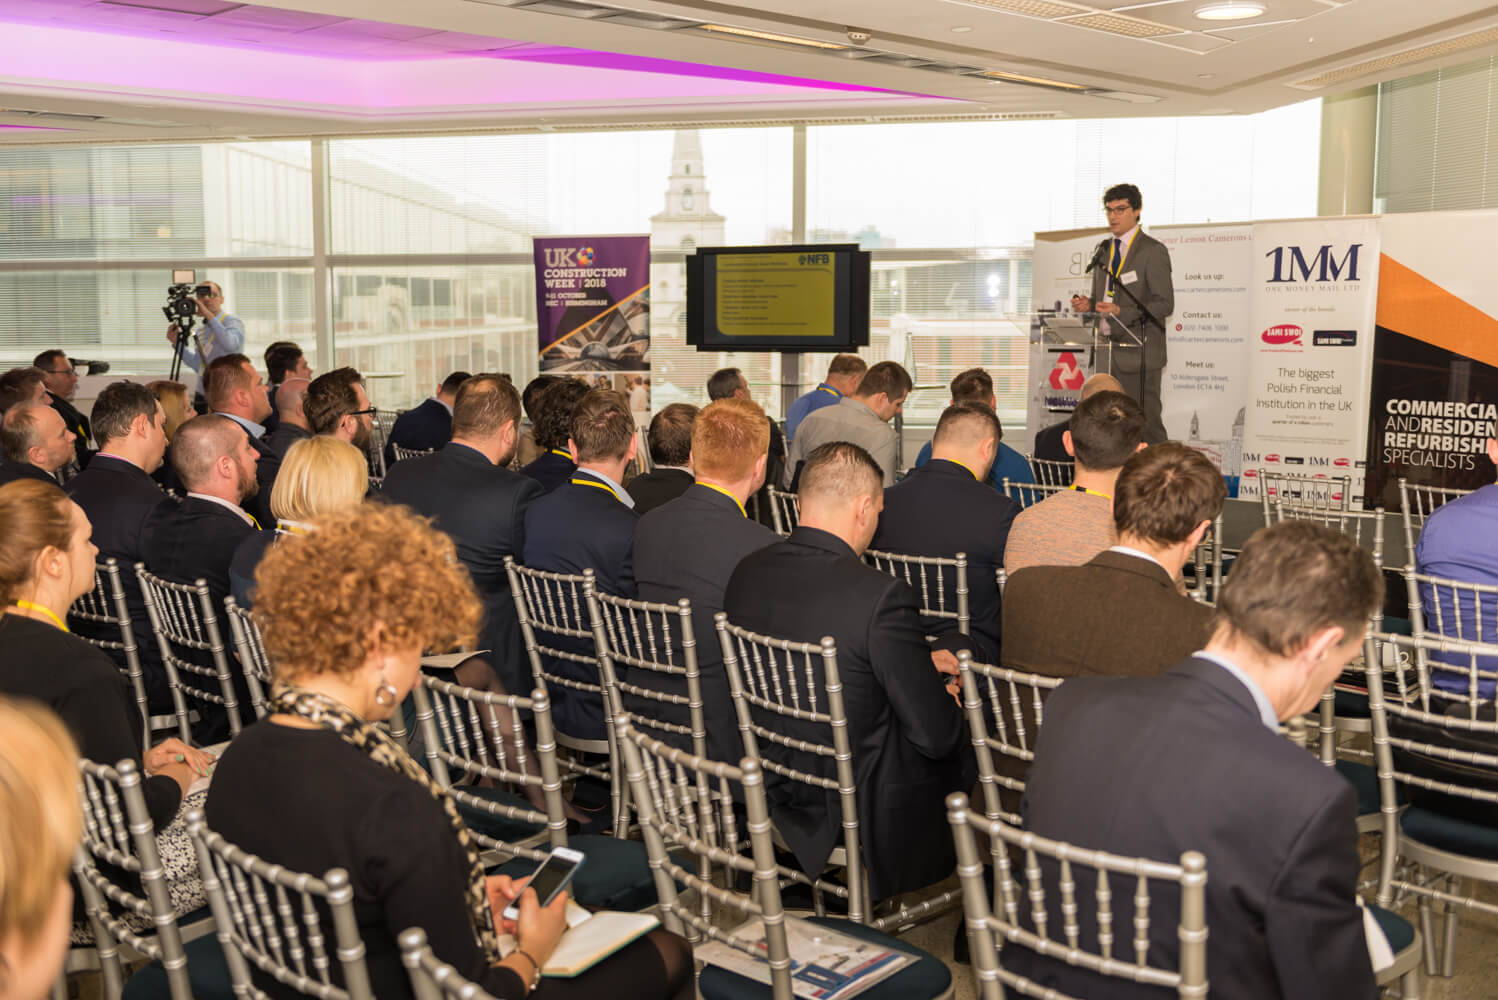 Polish builders in London share insights, Brexit concerns